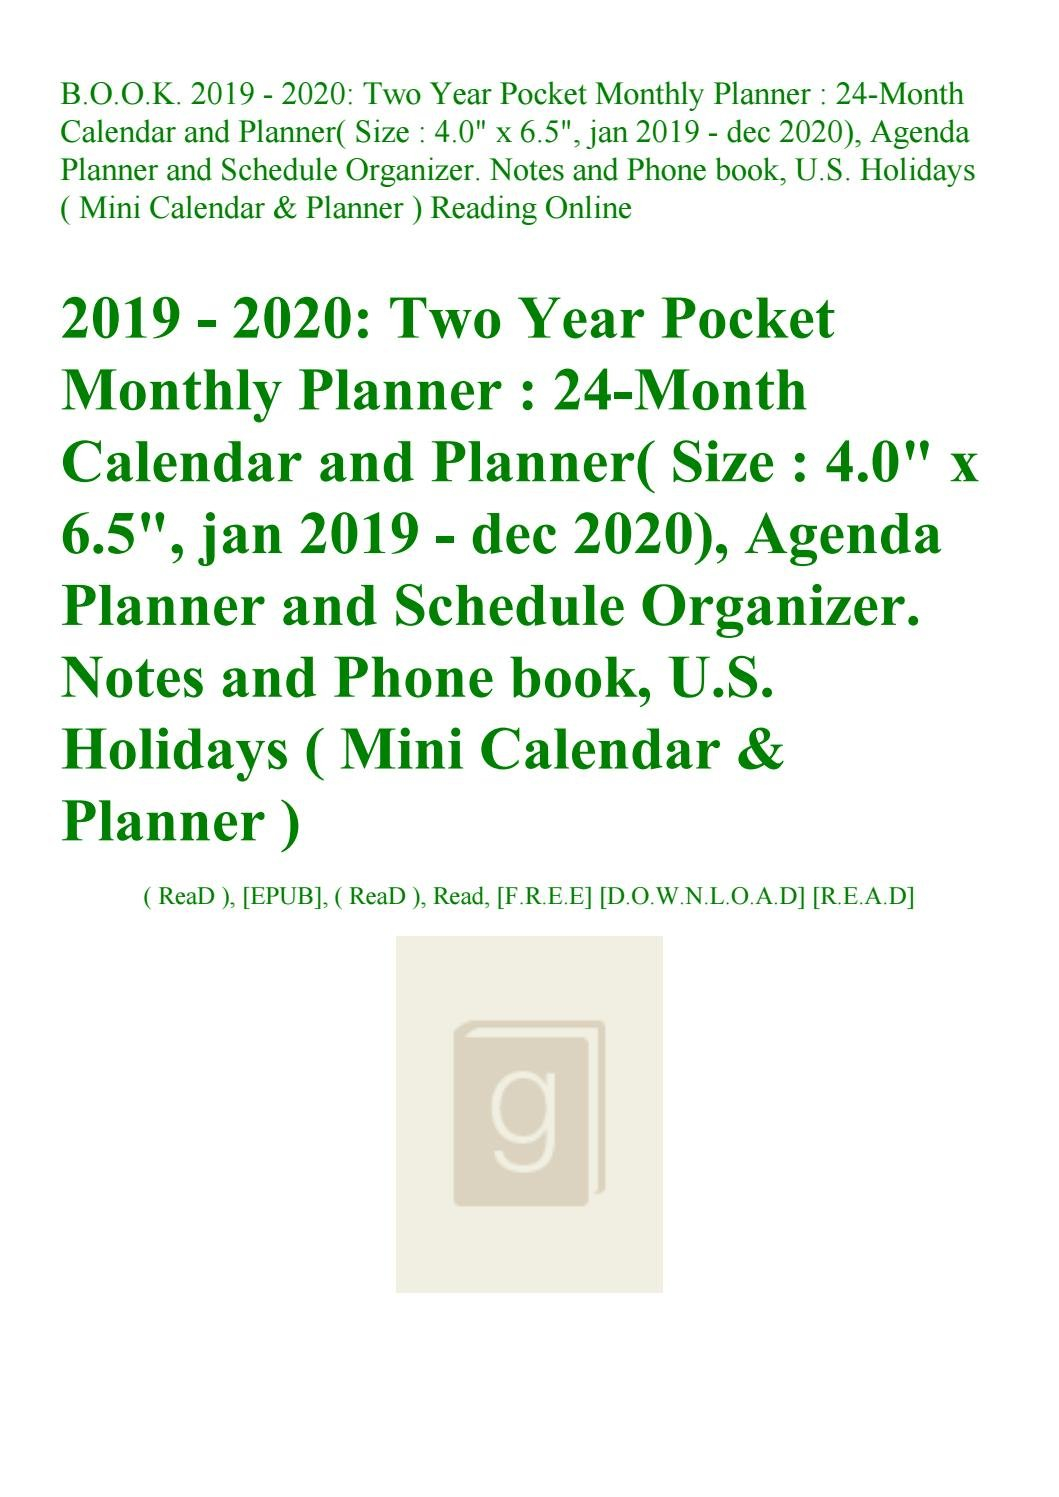 Read B.o.o.k. 2019 - 2020 Two Year Pocket Monthly Planner 24-Month U Of R Calendar 2019